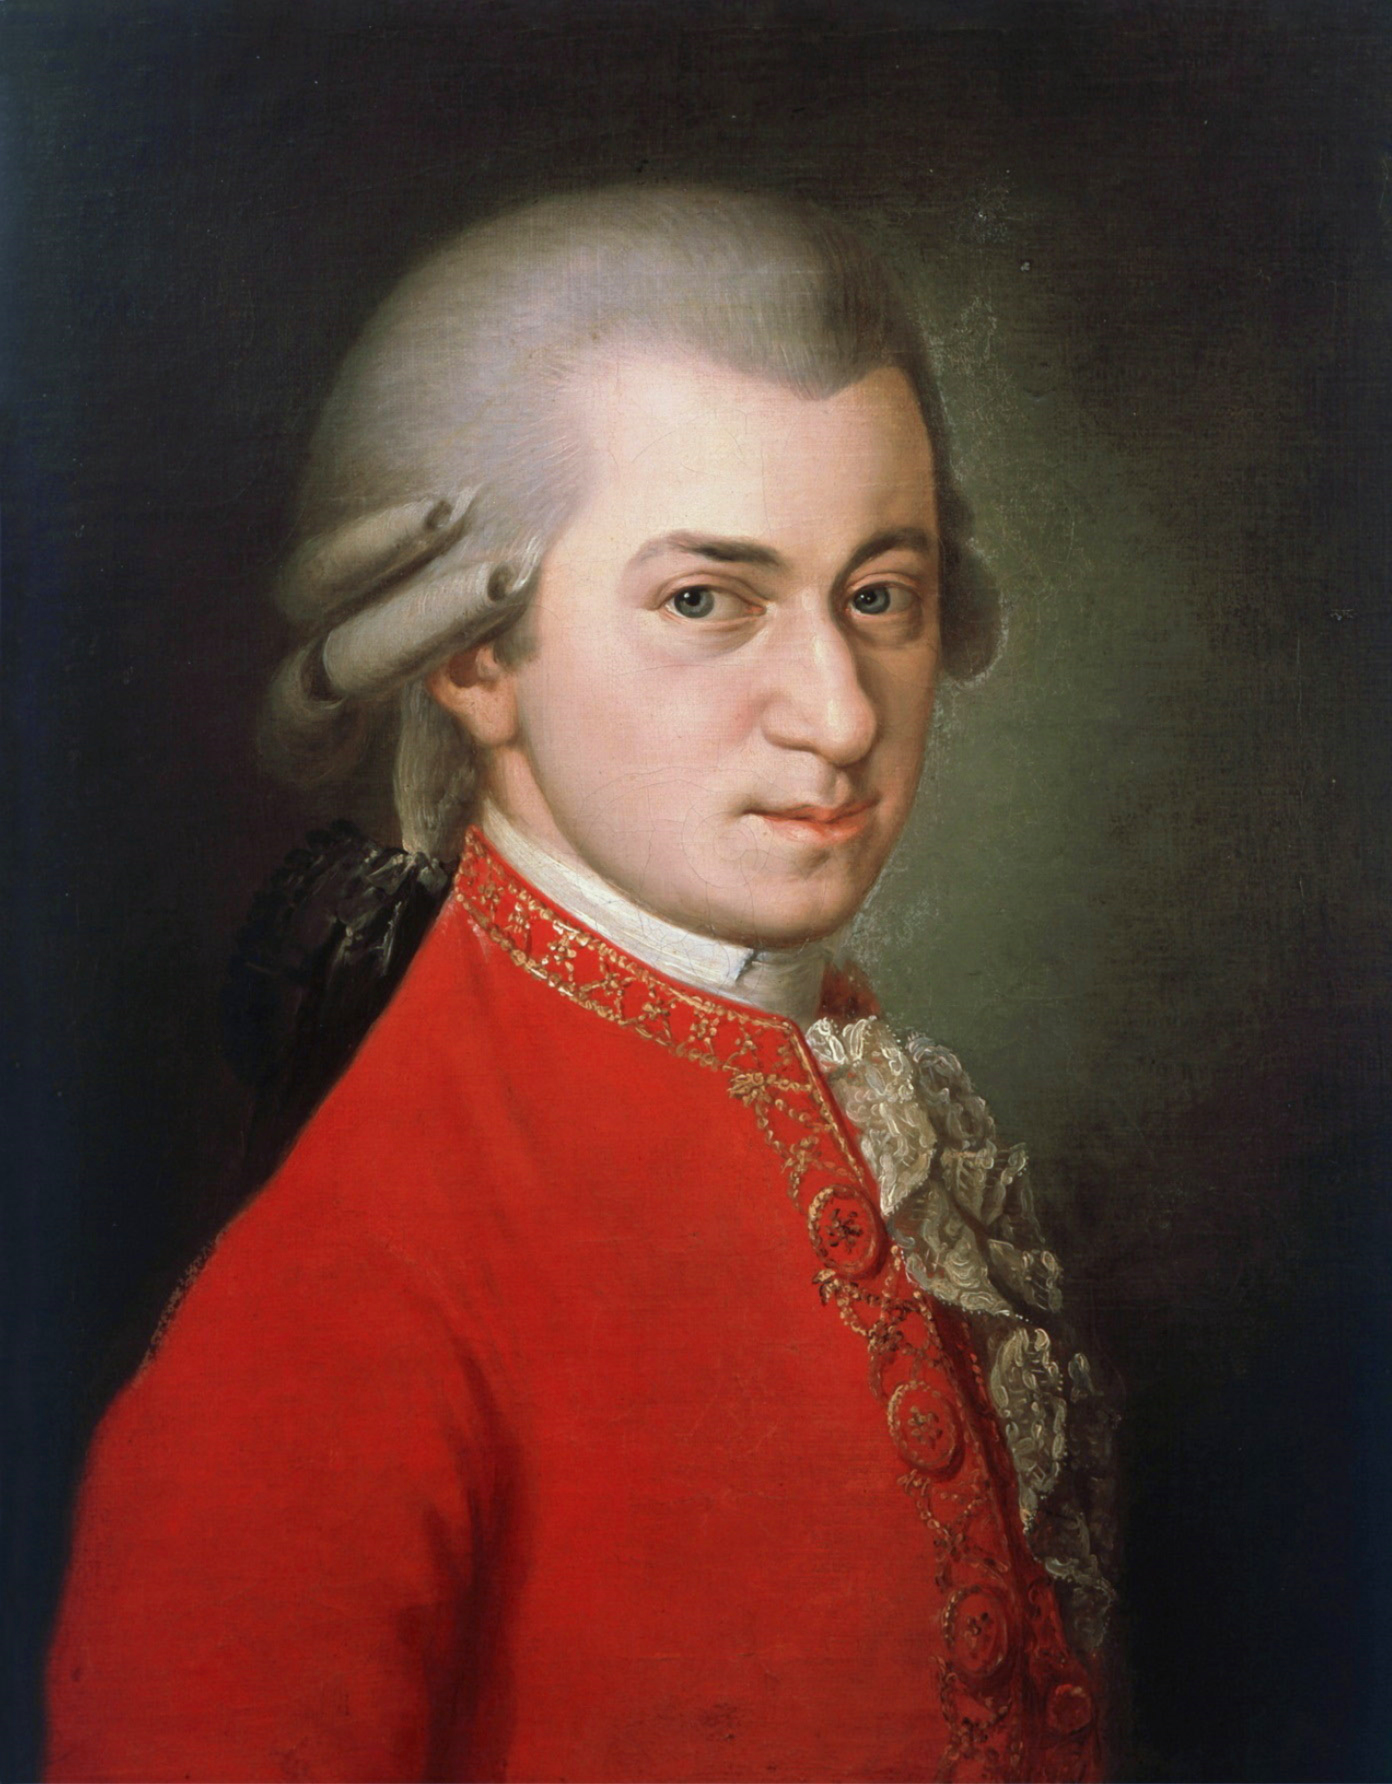 Mozart's biography: duels and his first son (1779 - 1783)